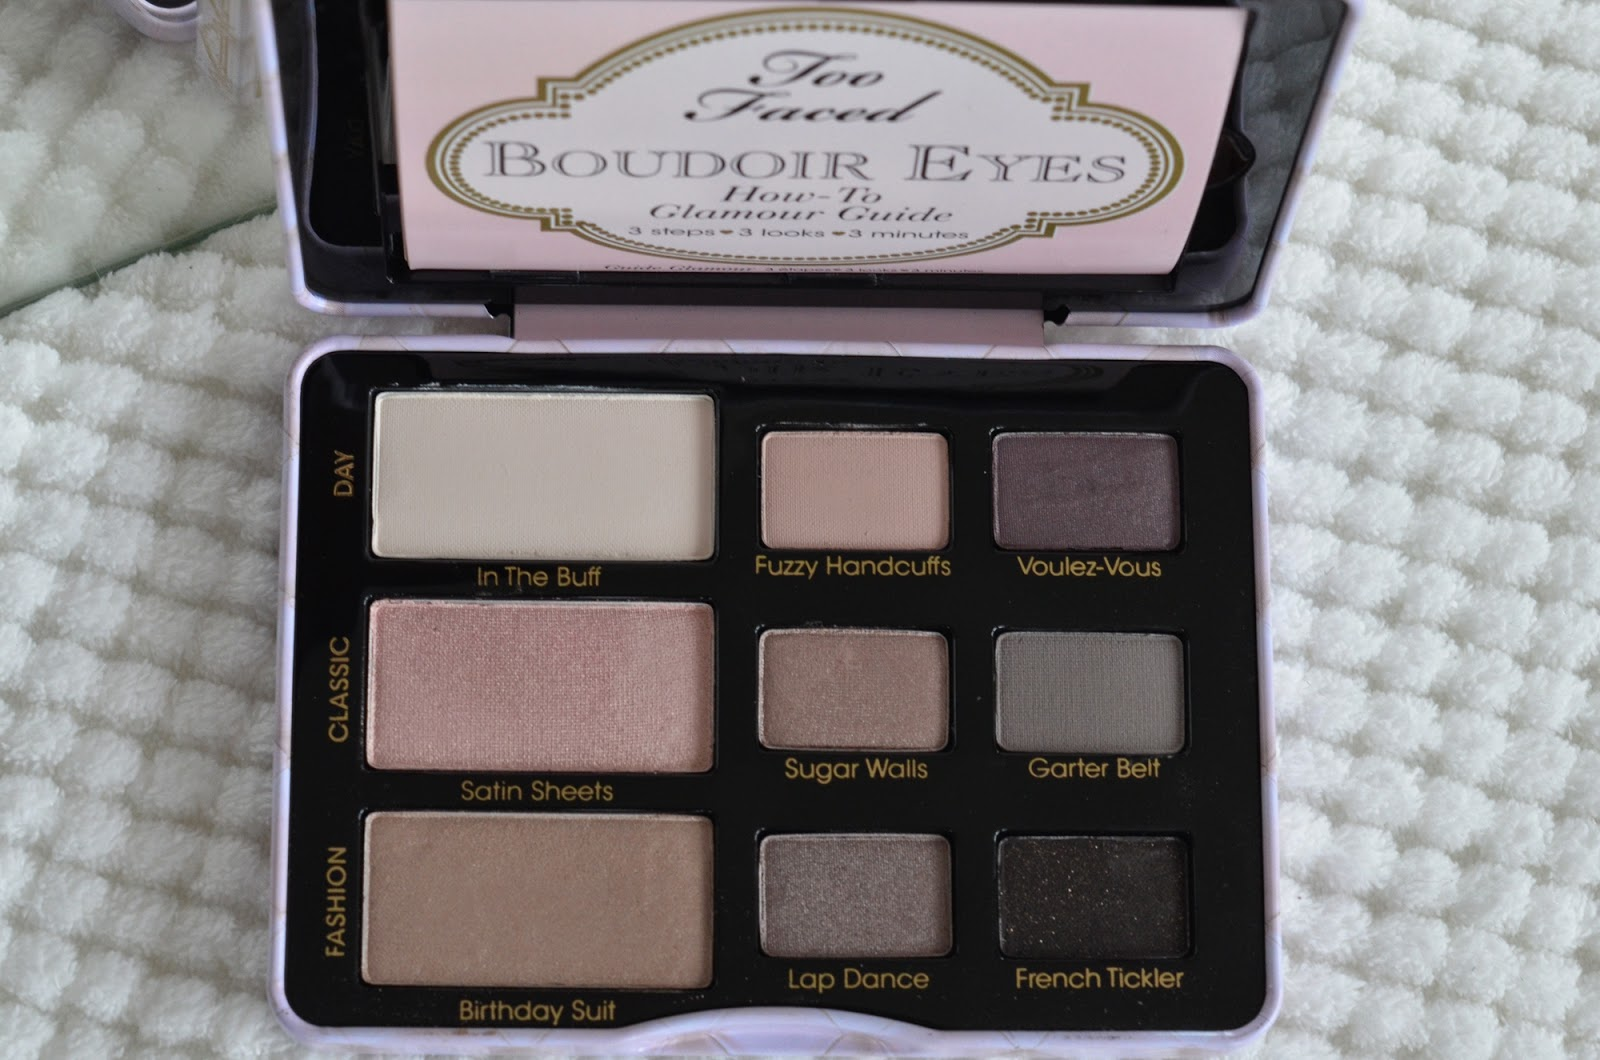 Too Faced Boudoir Eyes Sephora Review Swatches